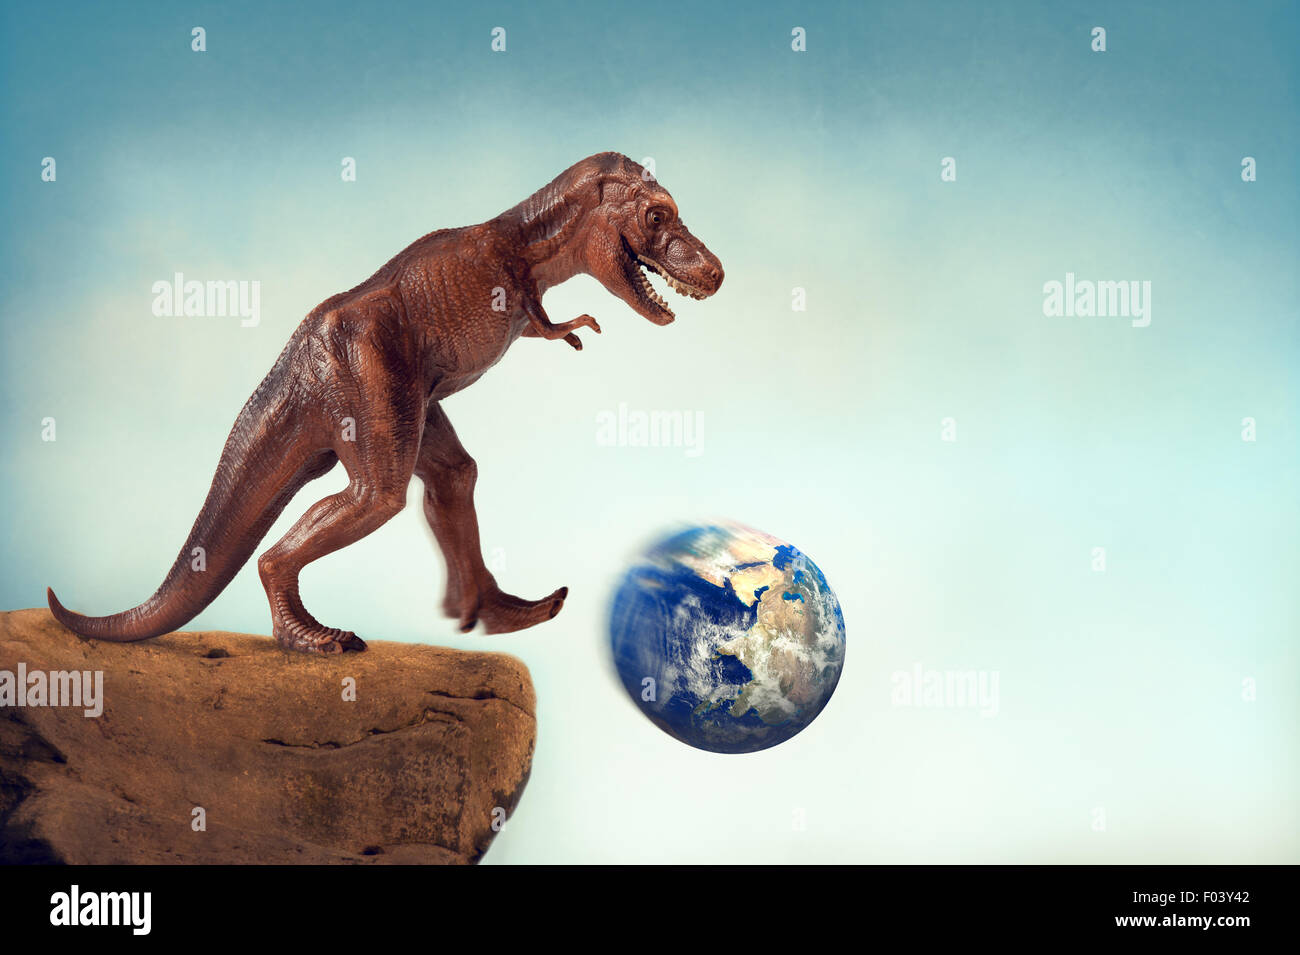 extinction or sustainability concept dinosaur kicking the planet earth off a precipice - Stock Image